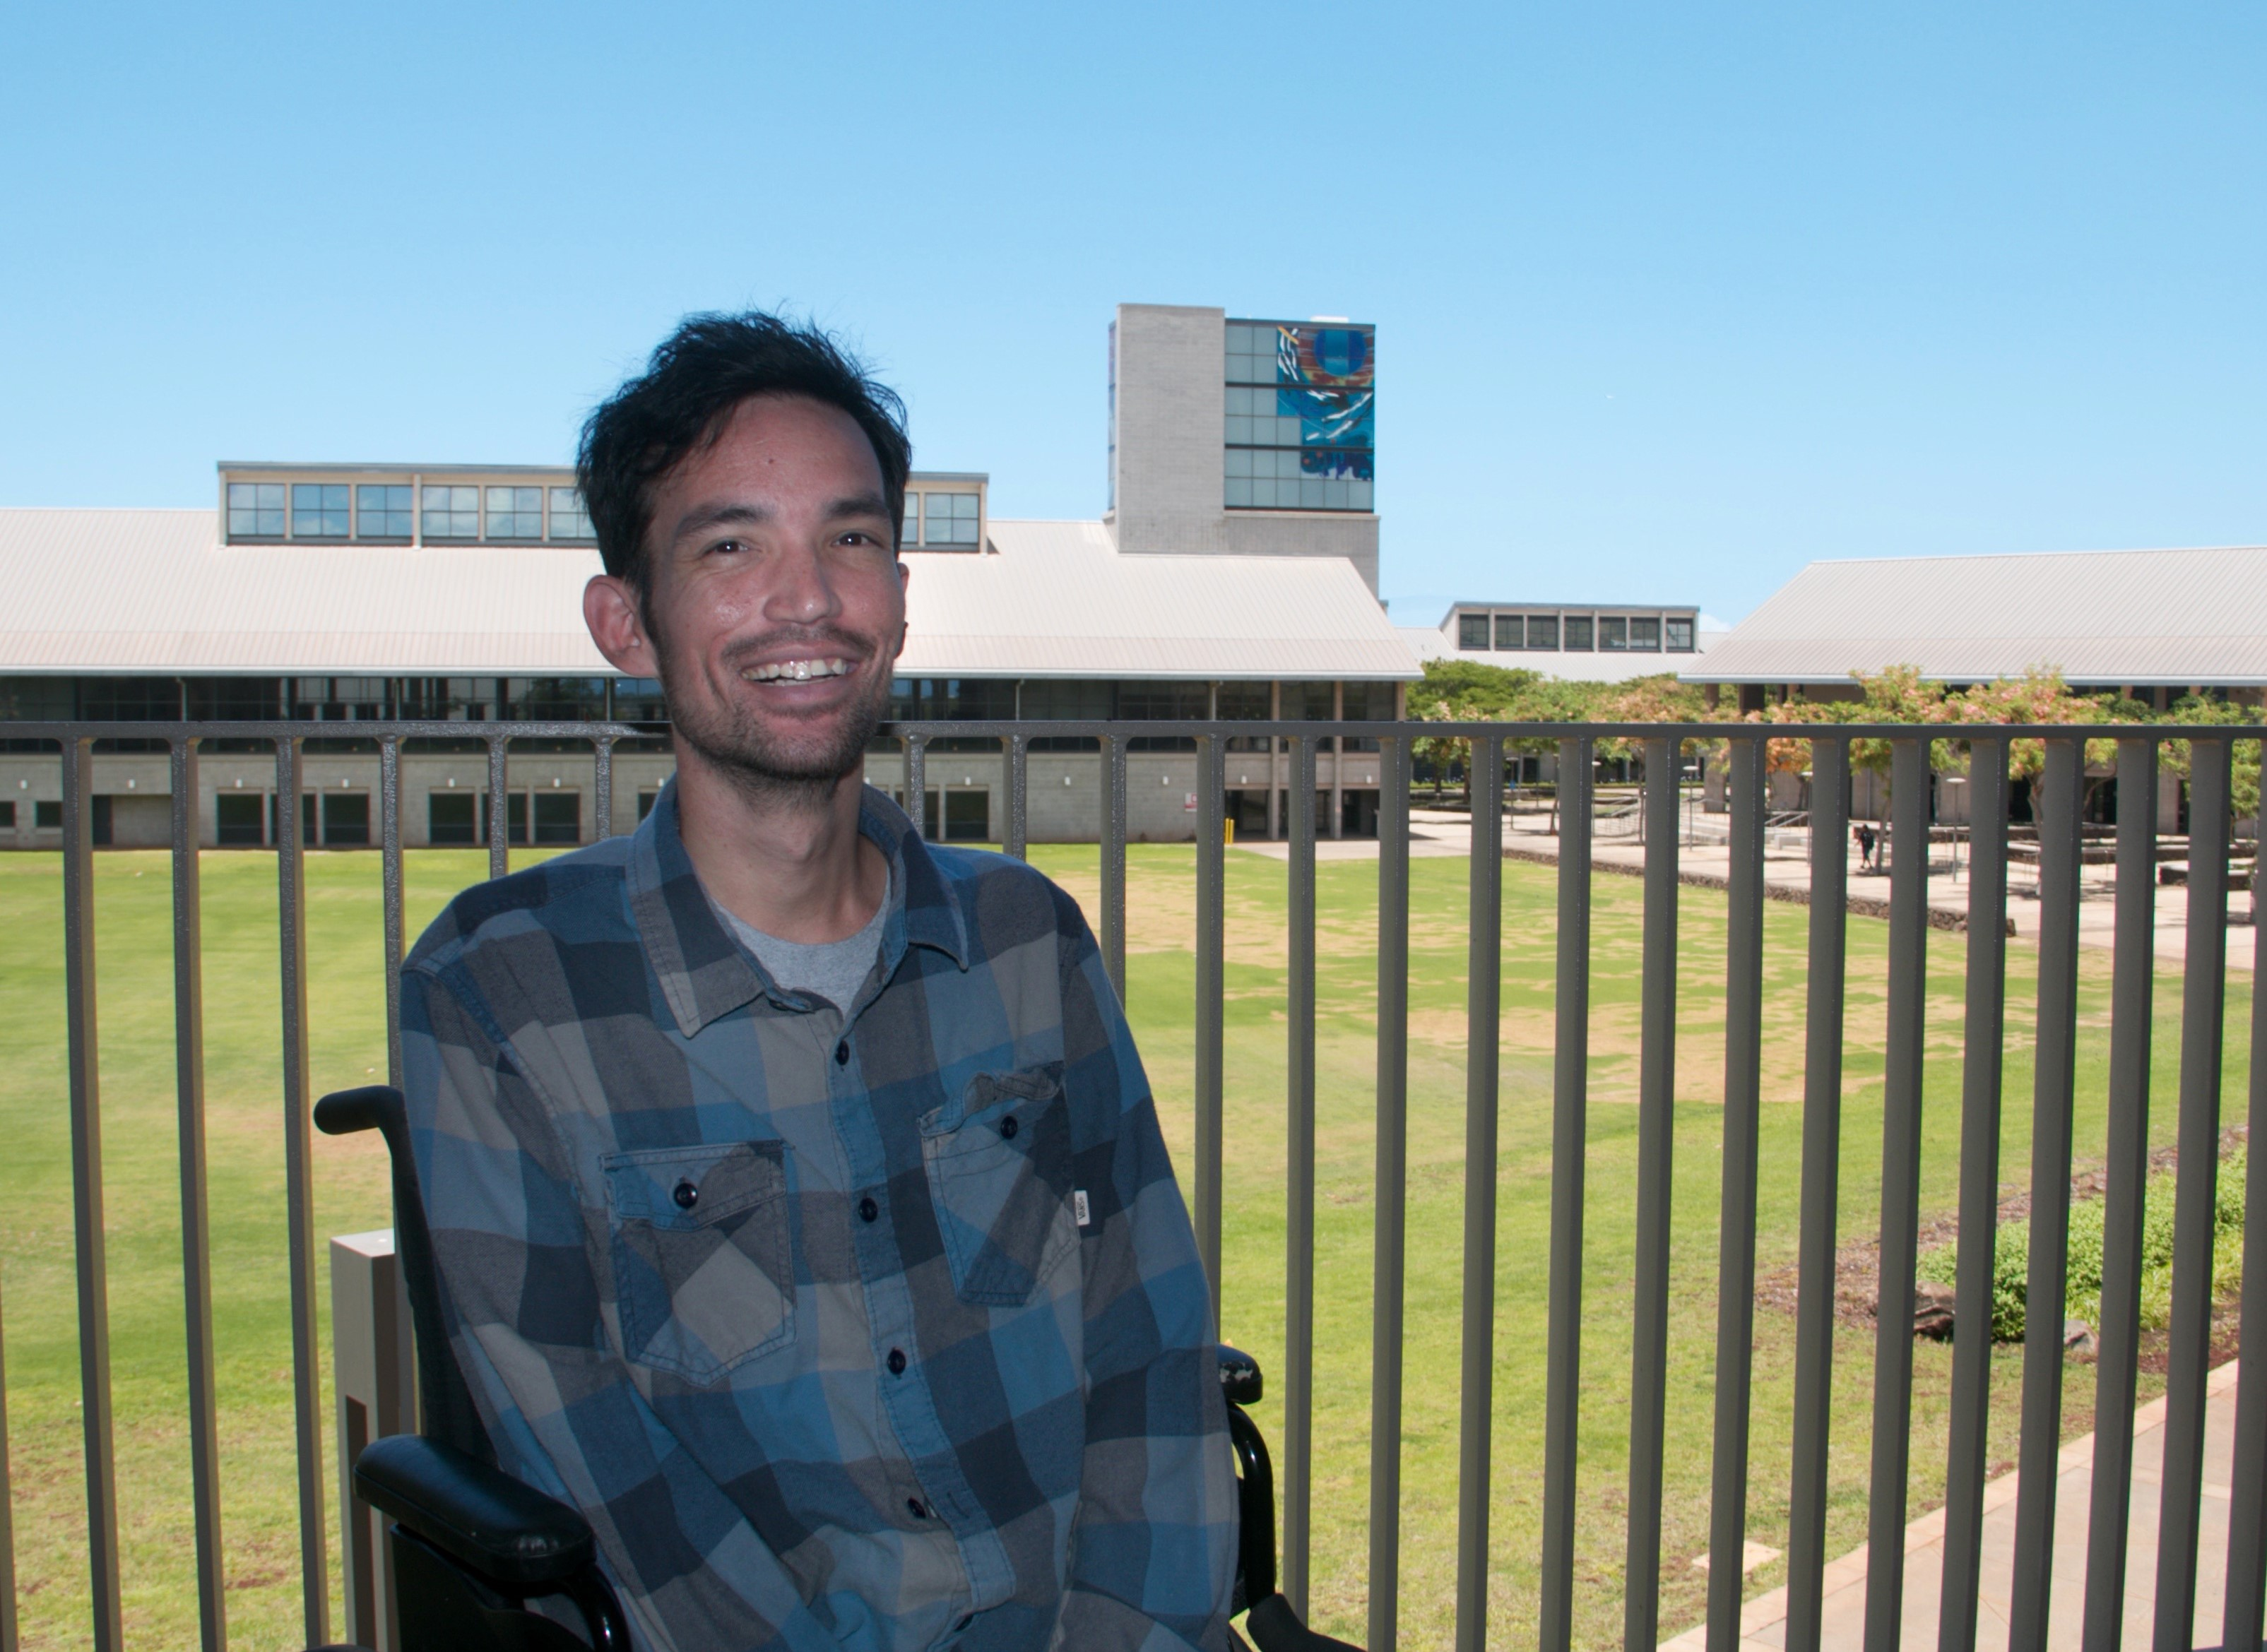 Photo of a man sitting in a wheelchair. Behind him is a metal railing and beyond that is the UH West Oahu campus - You can see portions of the Great Lawn, the Library, Campus Center and the Laboratory building